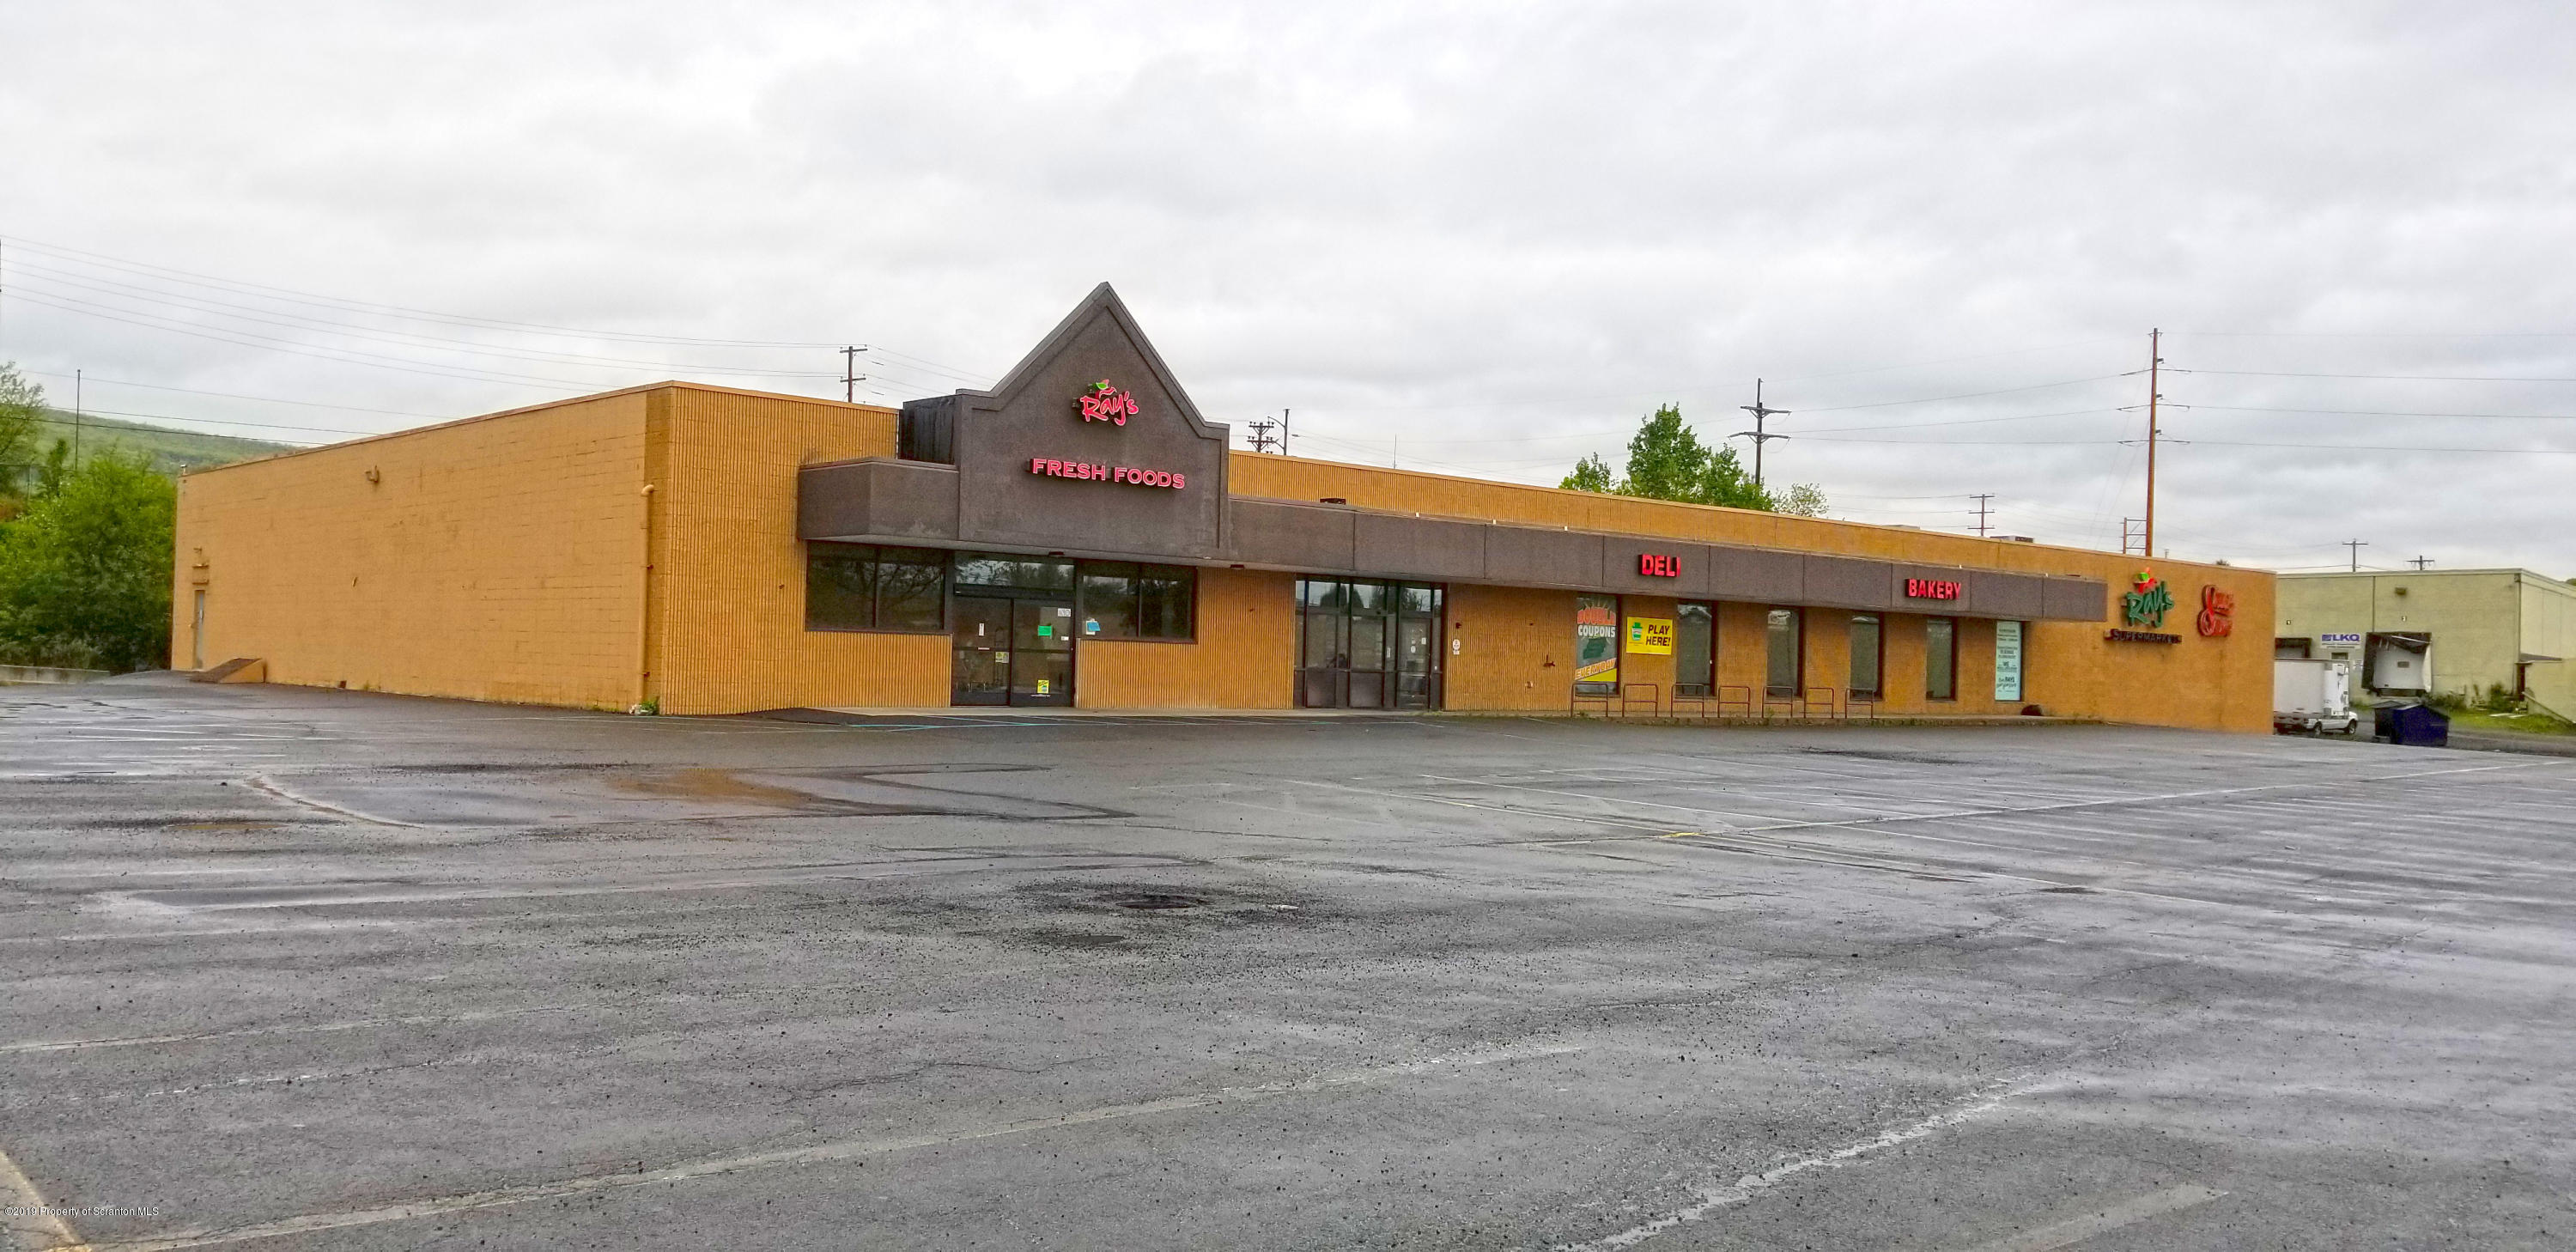 431 Lawrence St, Old Forge, Pennsylvania 18518, ,2 BathroomsBathrooms,Commercial,For Lease,Lawrence,19-5745